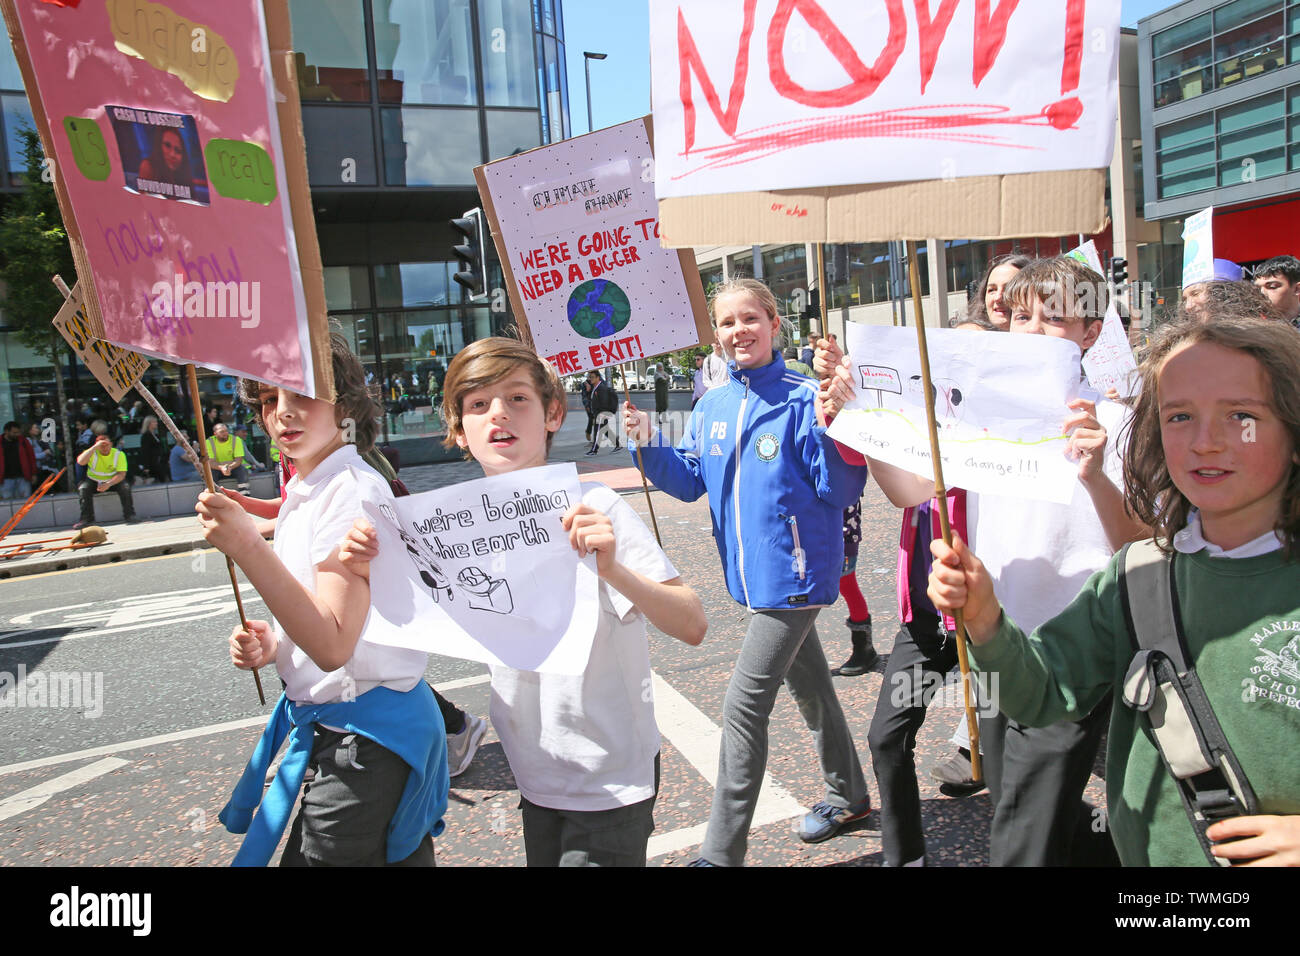 Manchester, UK, 21st June, 2019.School students strike for climate march to Manchester University calling for them to divest from funding organisations that contribute to climate change.  Manchester.  Credit: Barbara Cook/Alamy Live News Stock Photo